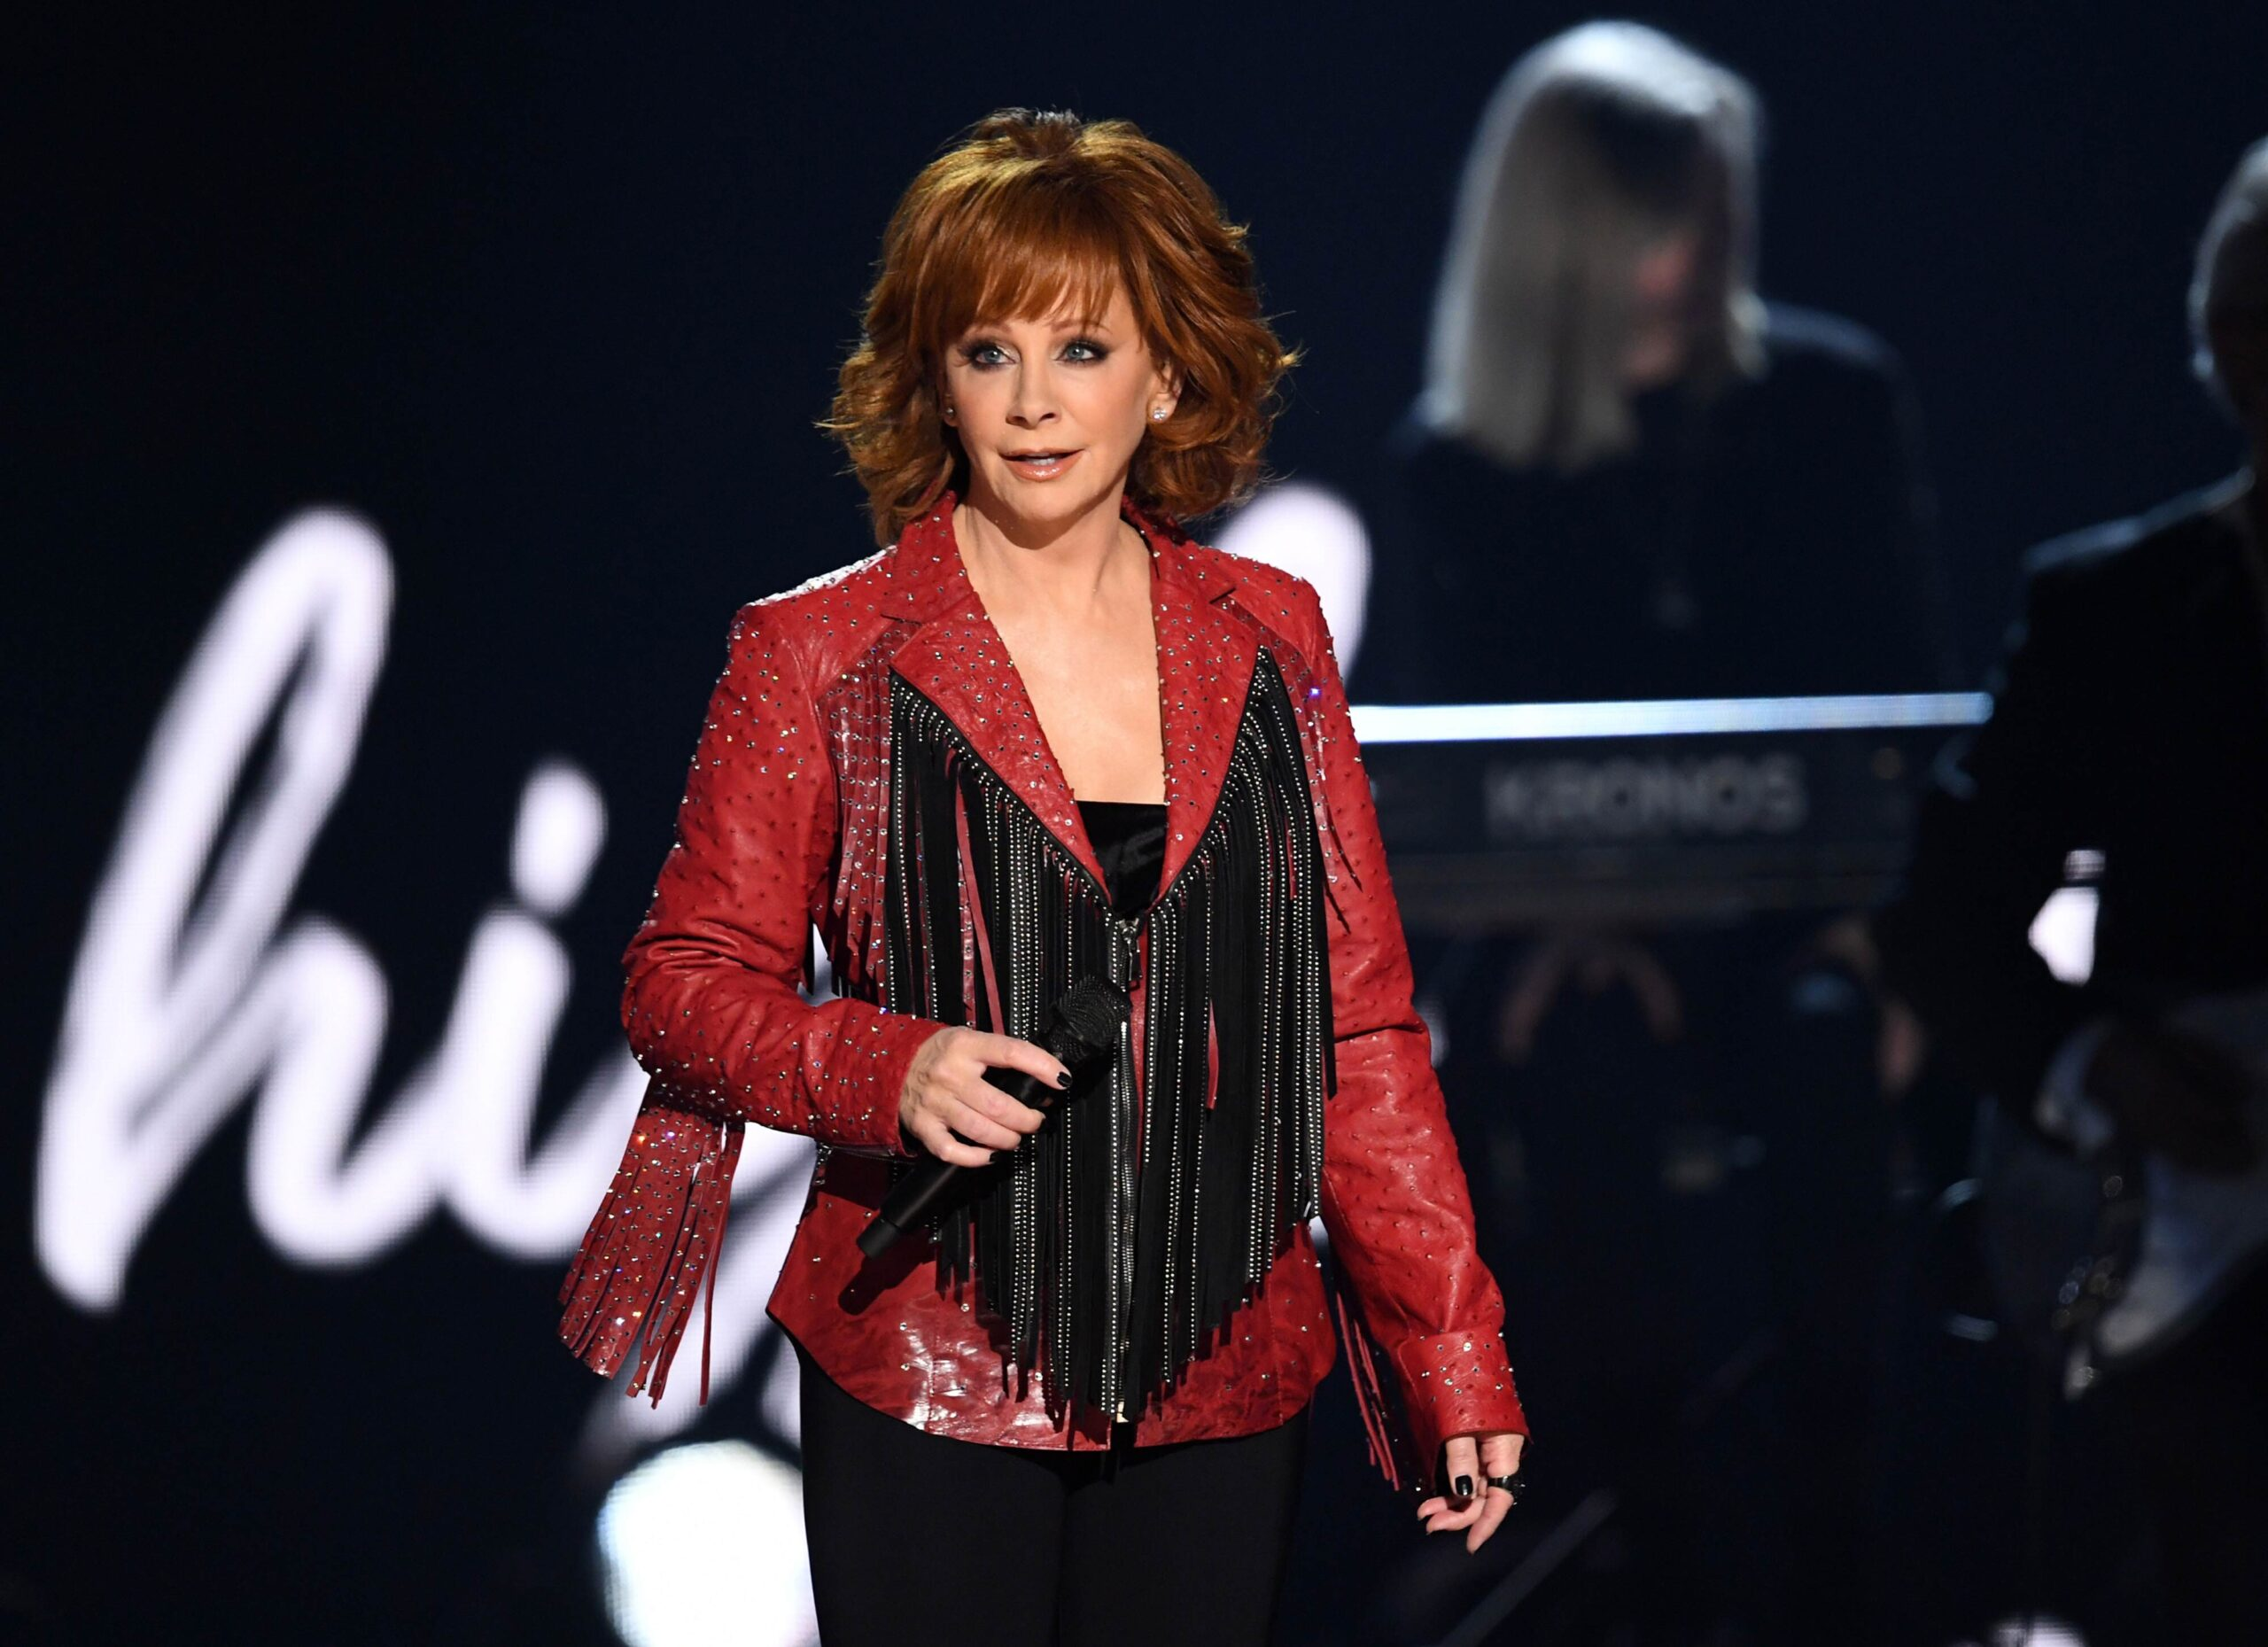 <i>Kevin Winter/Getty Images</i><br/>Reba McEntire expressed gratitude to the fire and police departments in Atoka